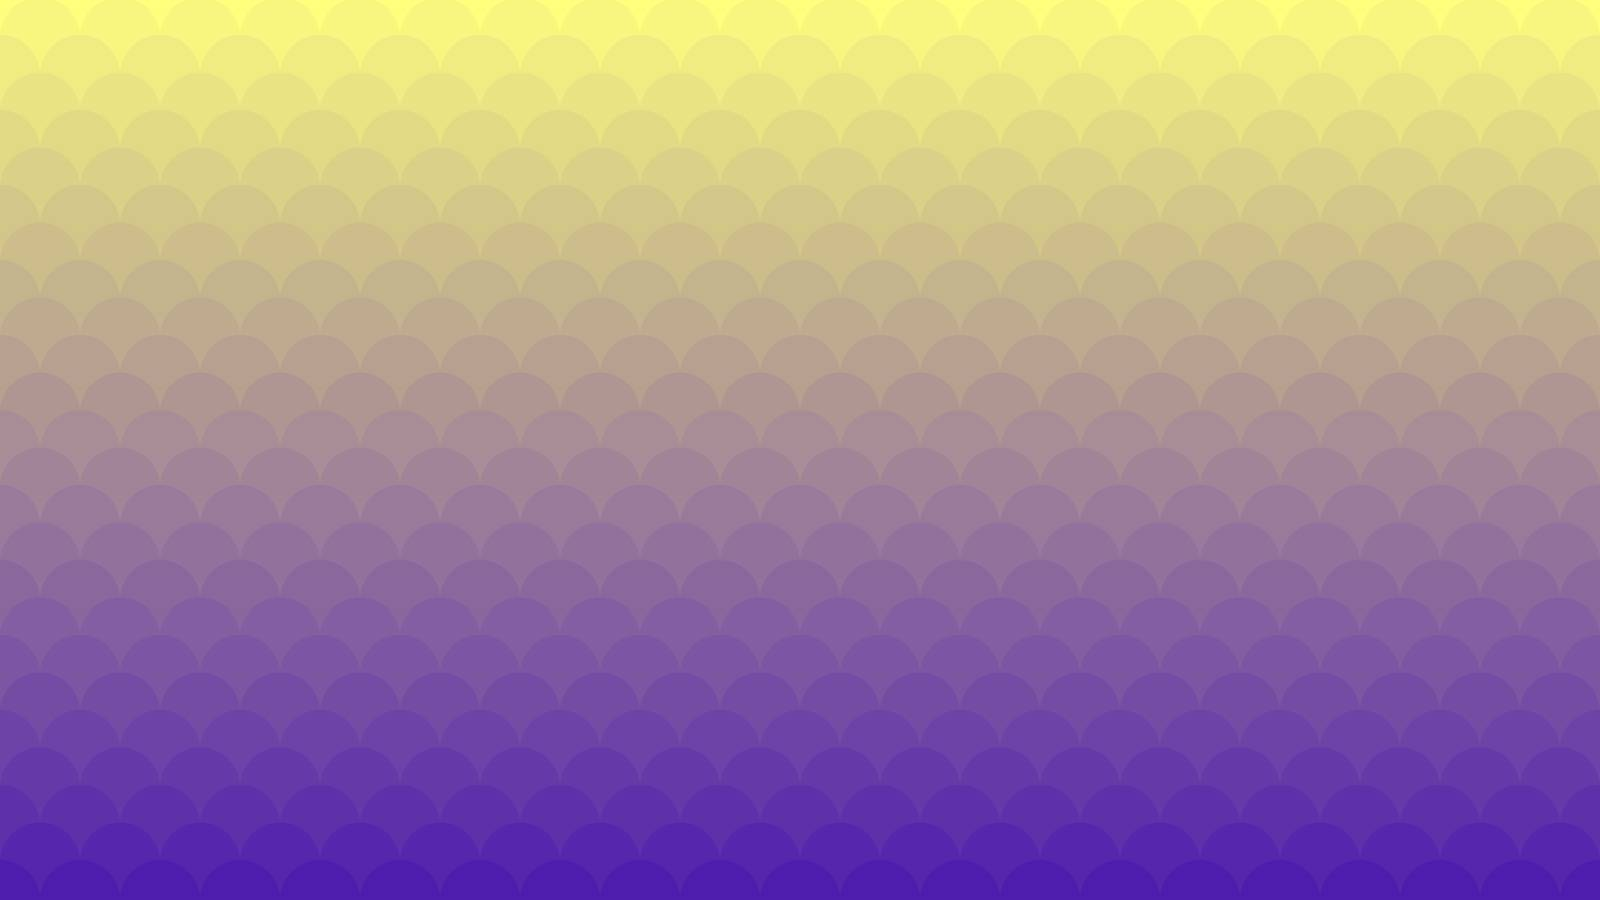 Yellow Violet Gradient vector pattern with small circles. Minimal abstract illustration for website, poster, banner ads.